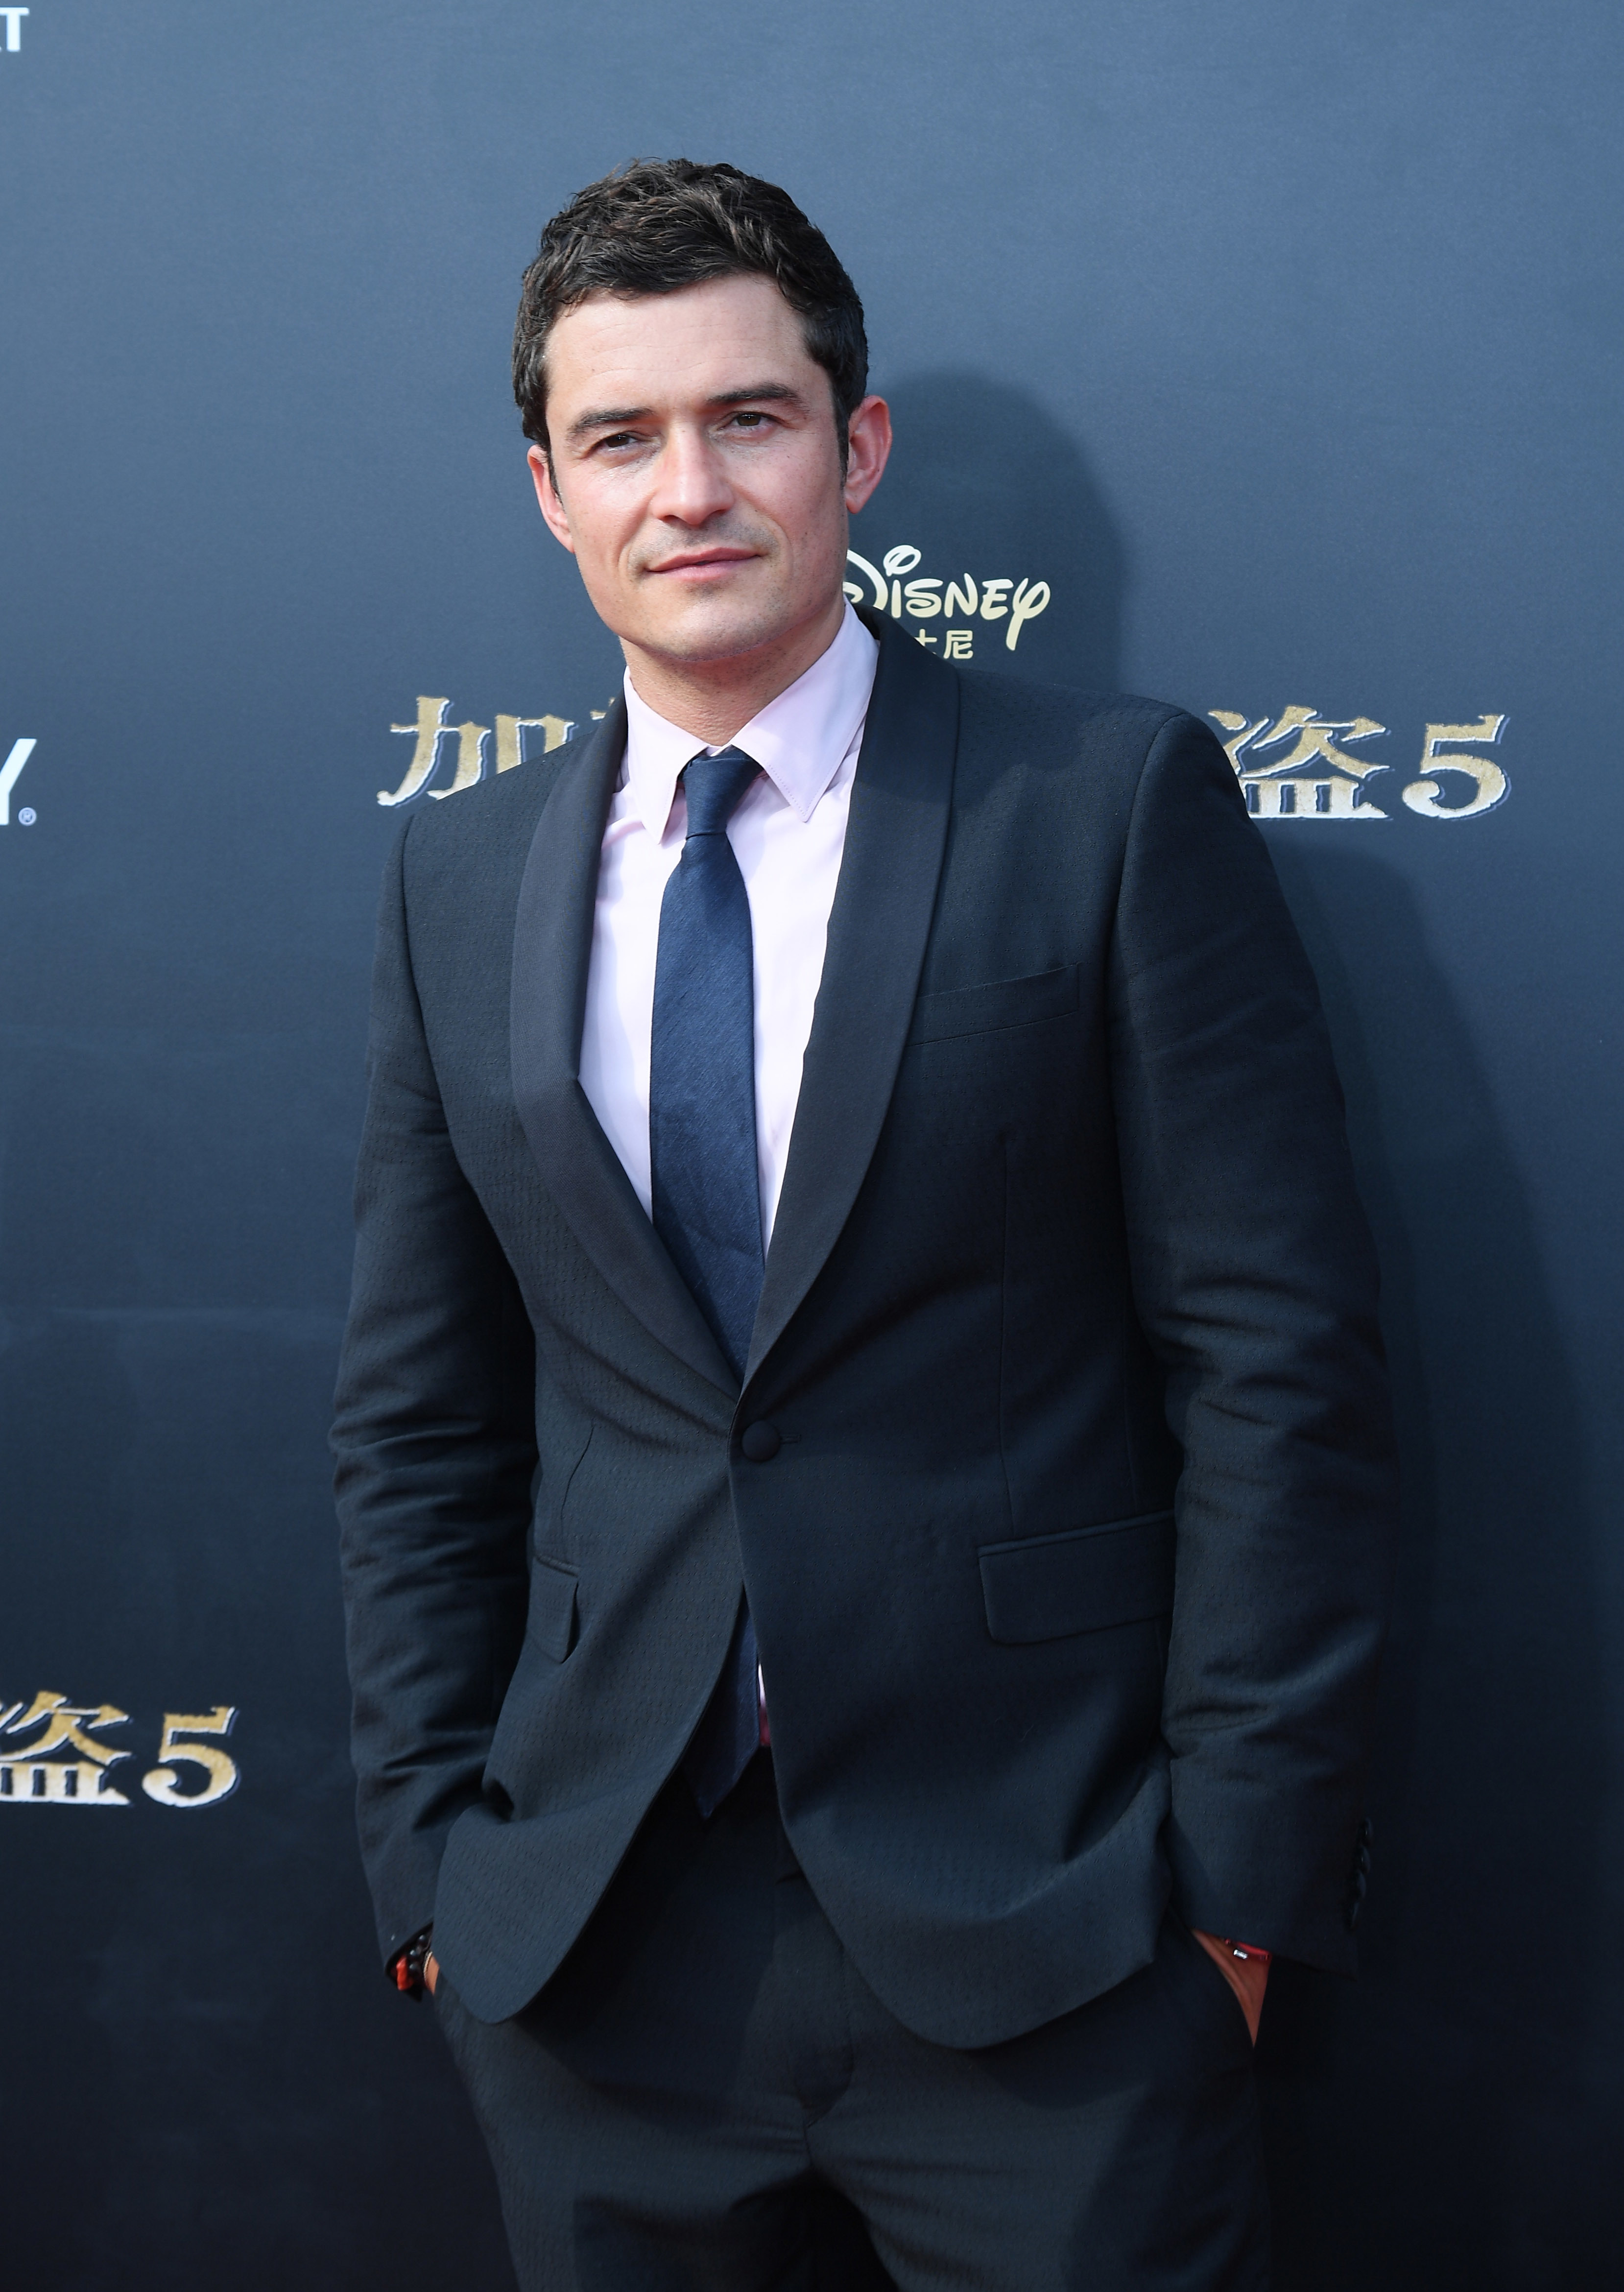 Orlando Bloom's mother weighs in on his derogatory remark